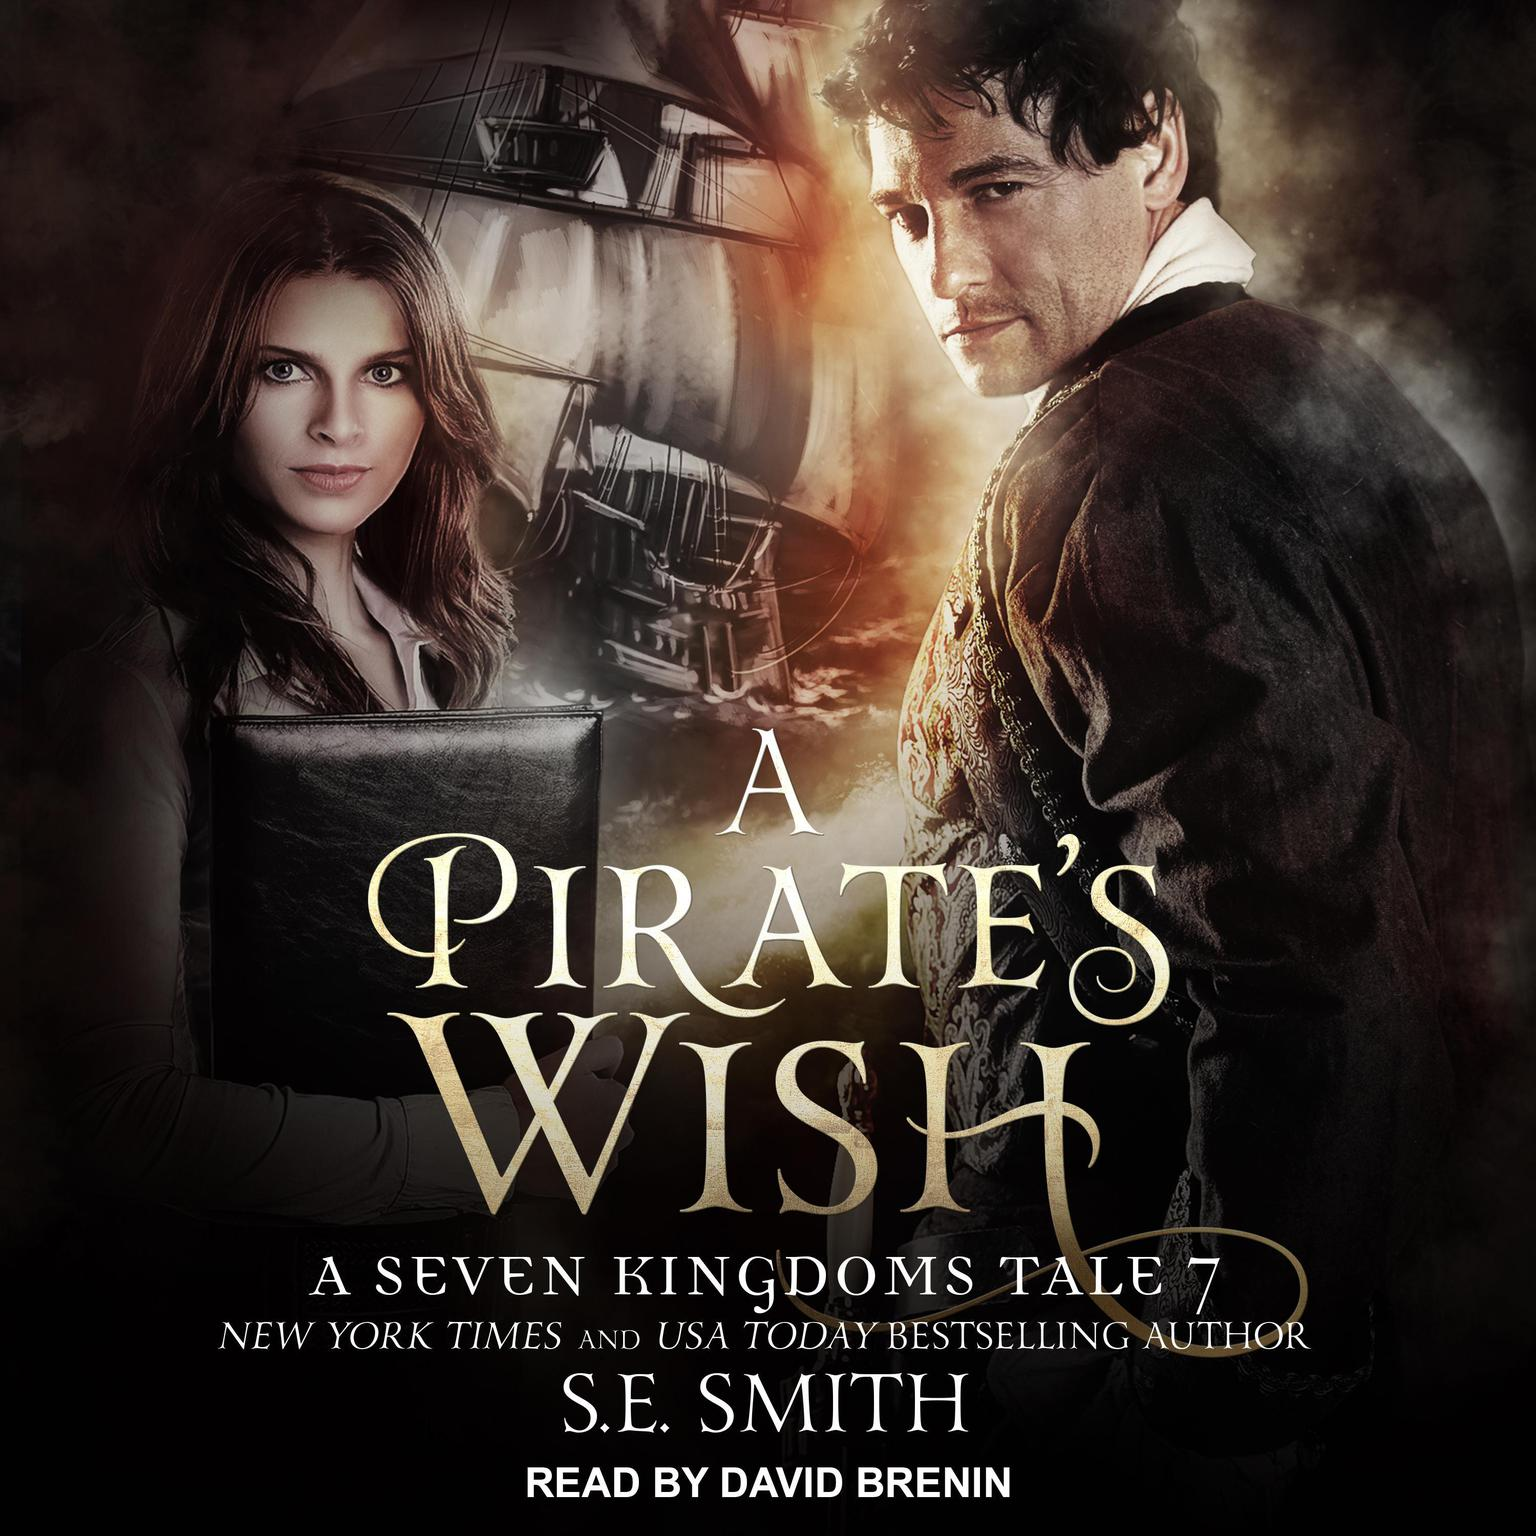 Printable A Pirate's Wish: A Seven Kingdoms Tale 7 Audiobook Cover Art